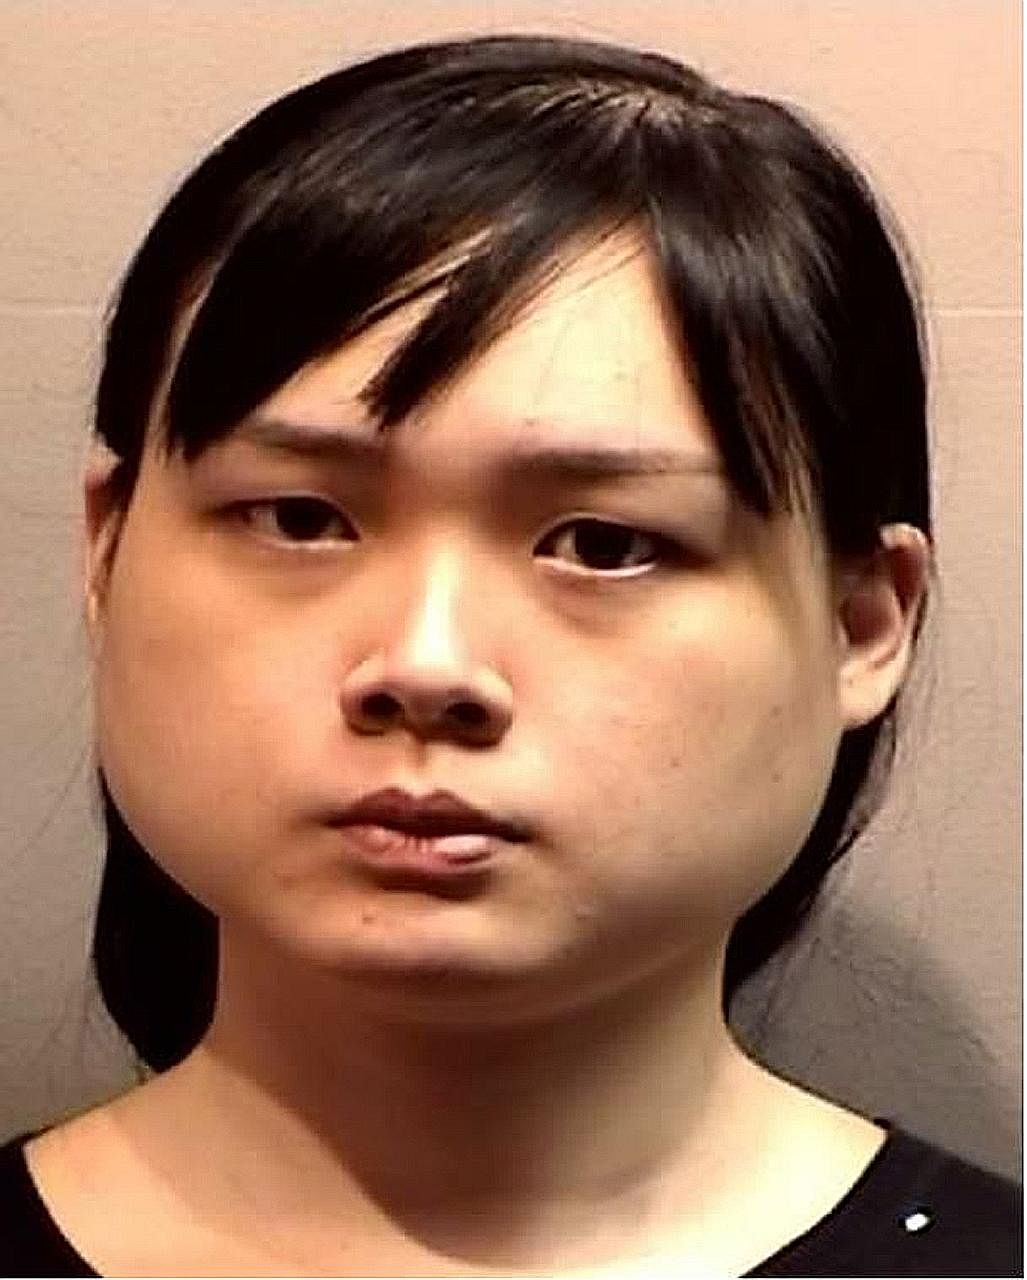 Chen admitted to six counts of cheating and two of forgery, with 21 other charges taken into consideration.